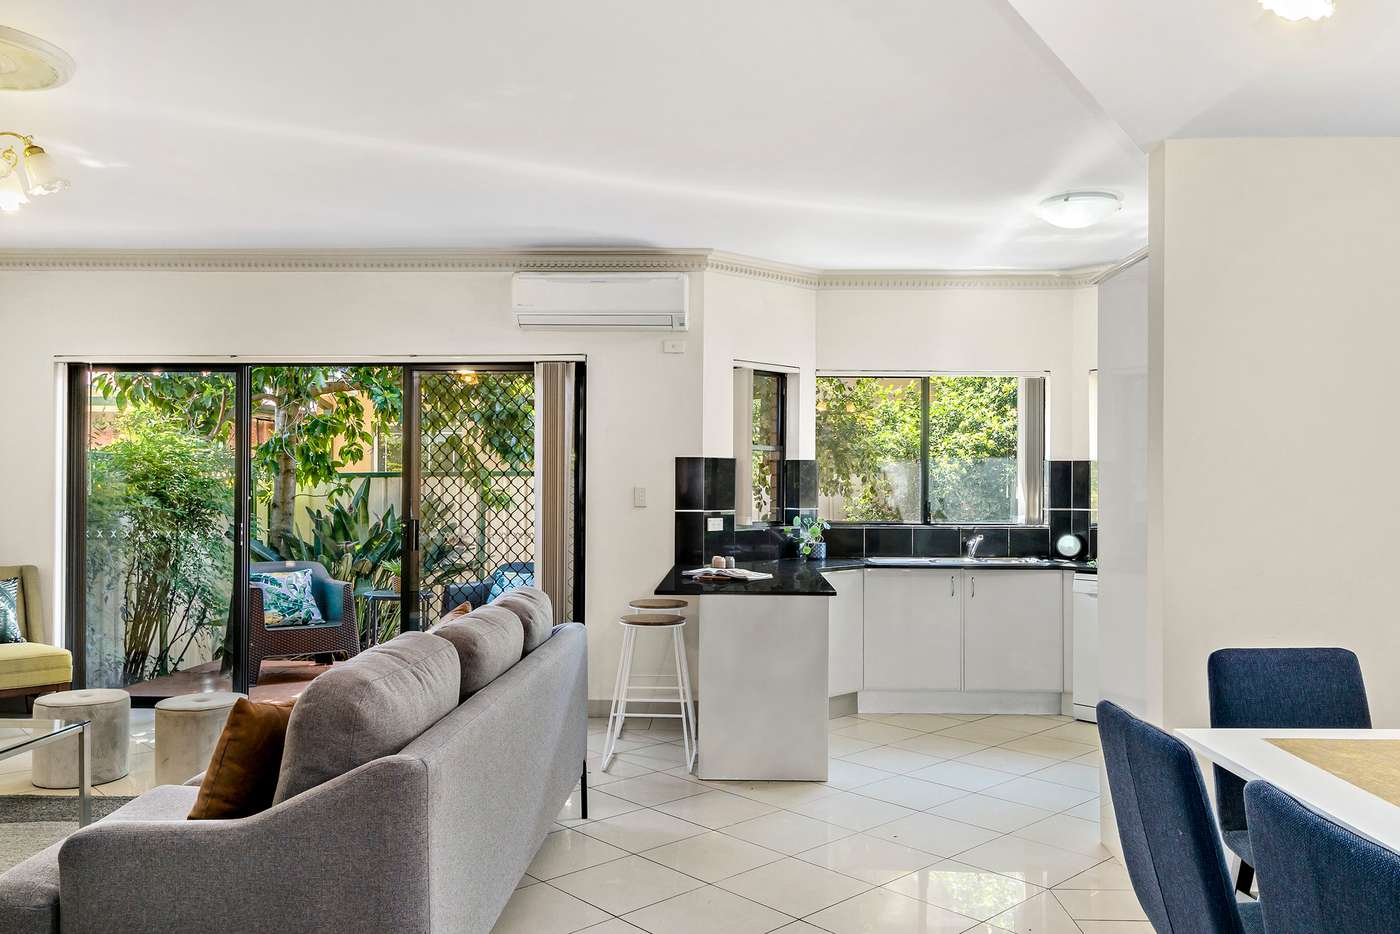 Fifth view of Homely townhouse listing, 4/8-10 Grandview Street, Parramatta NSW 2150